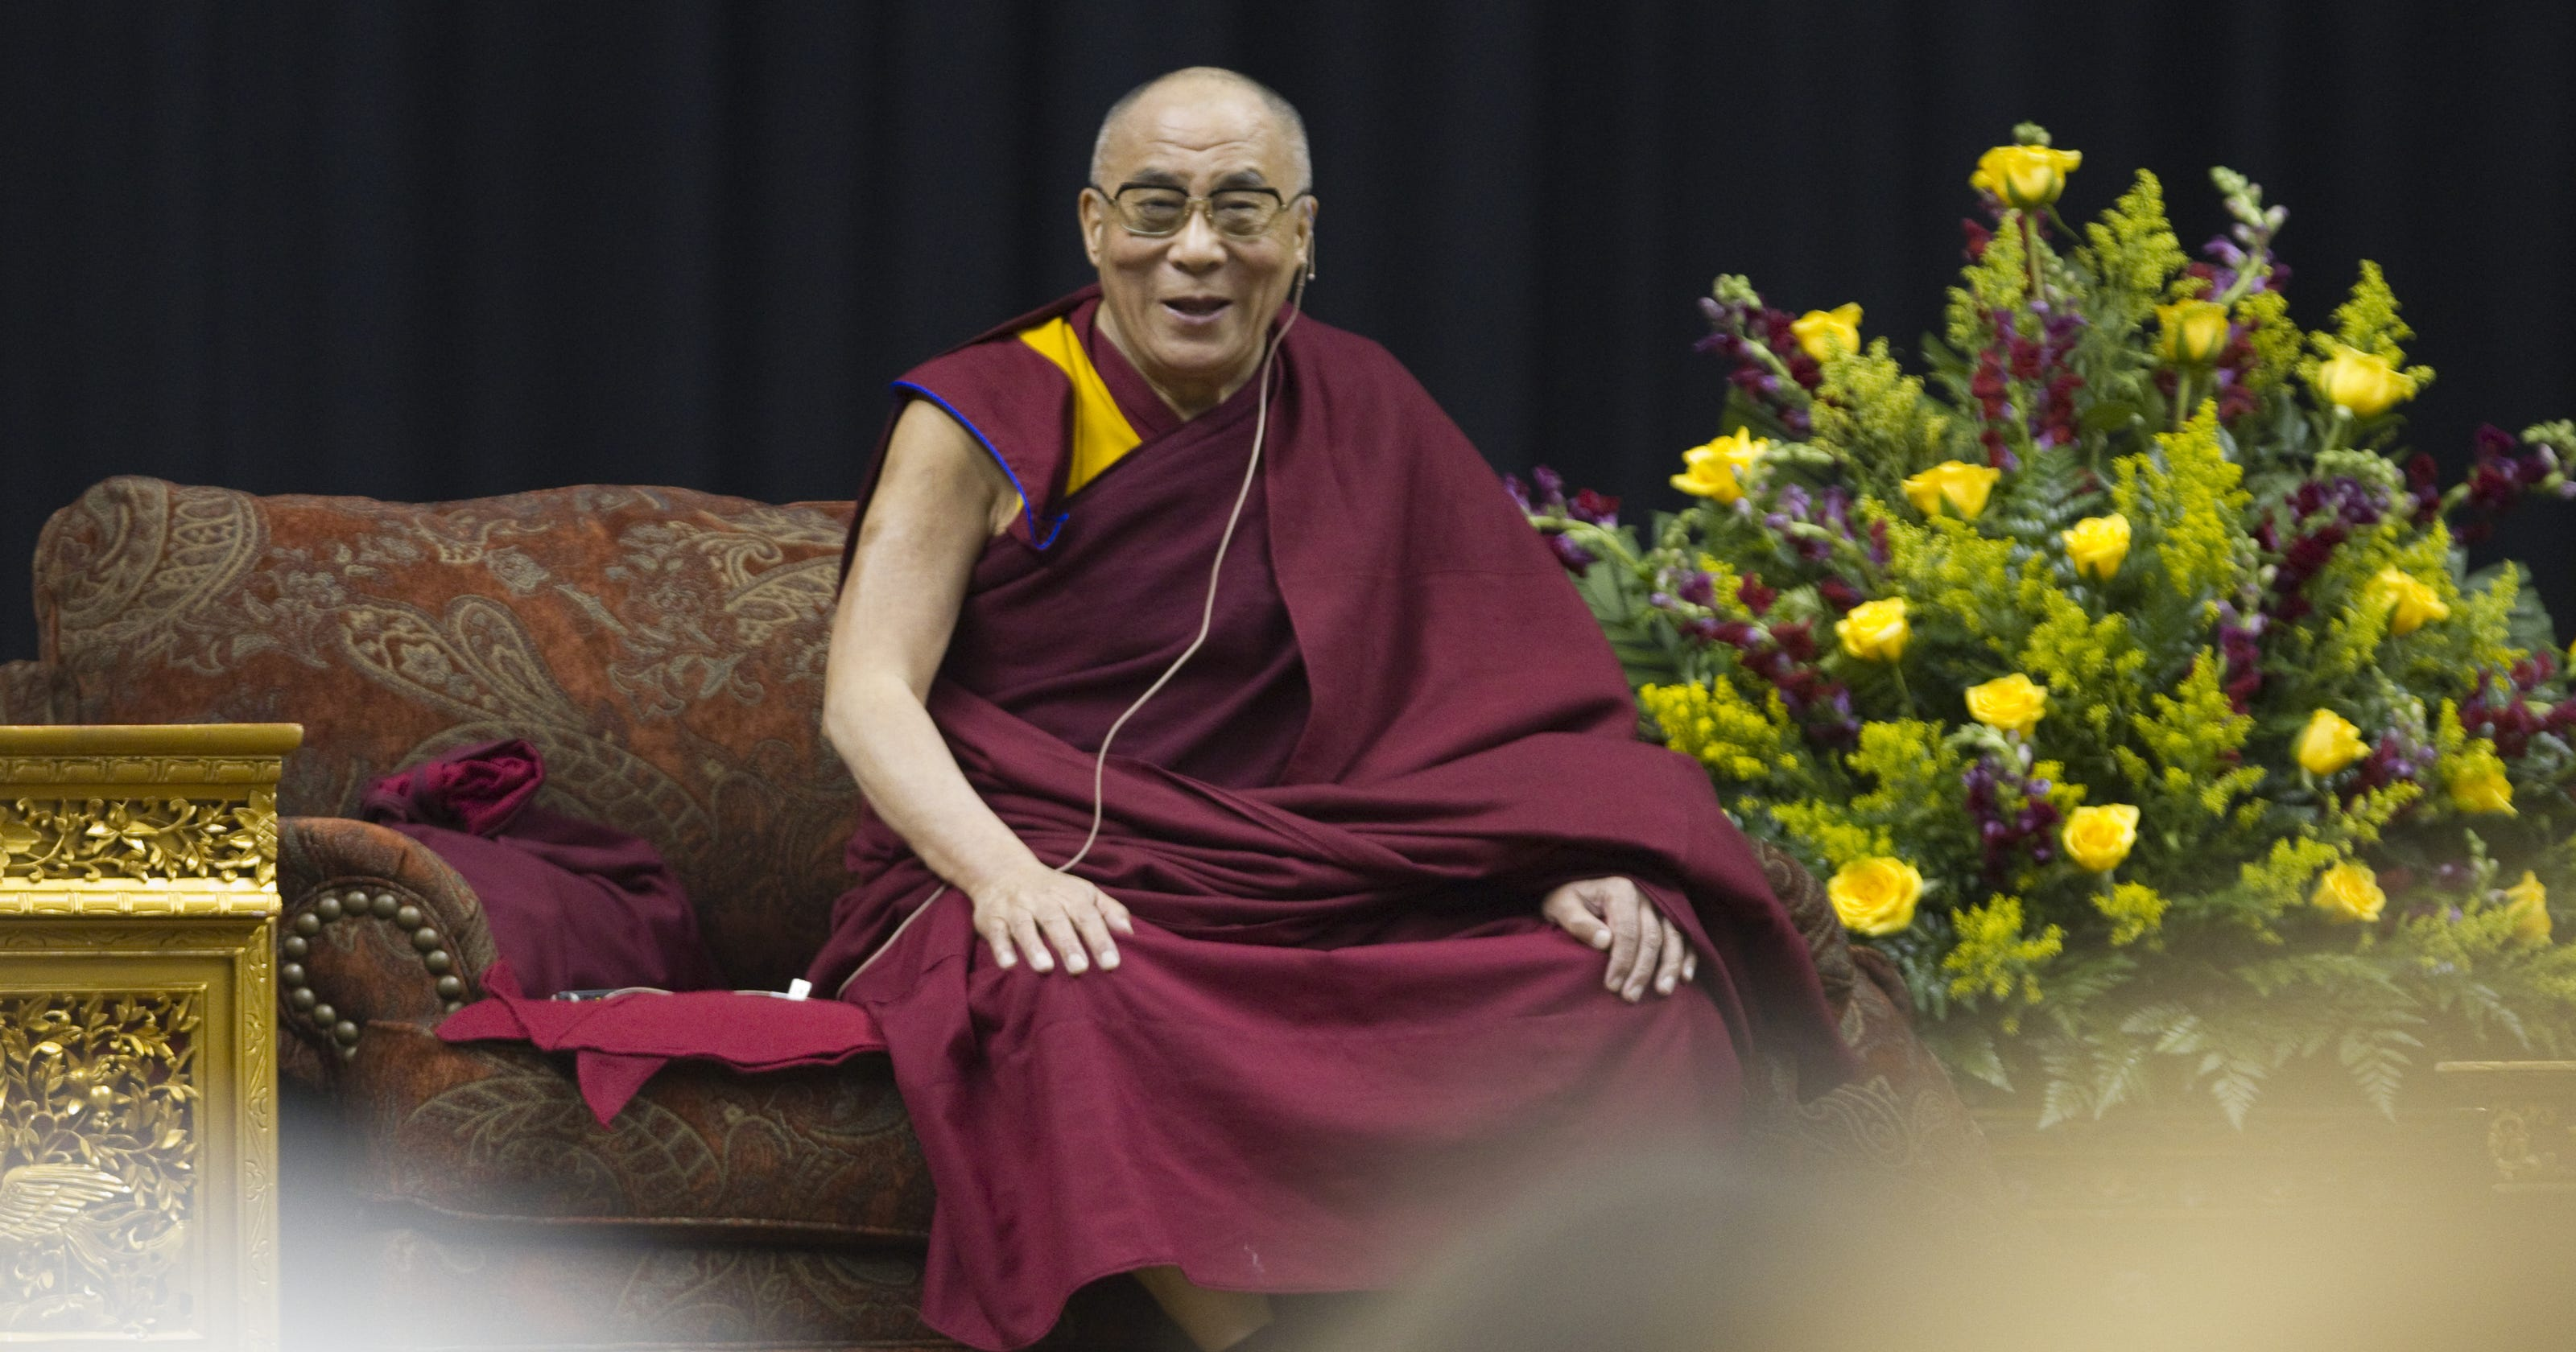 5 things about the Dalai Lama's visit to Indy